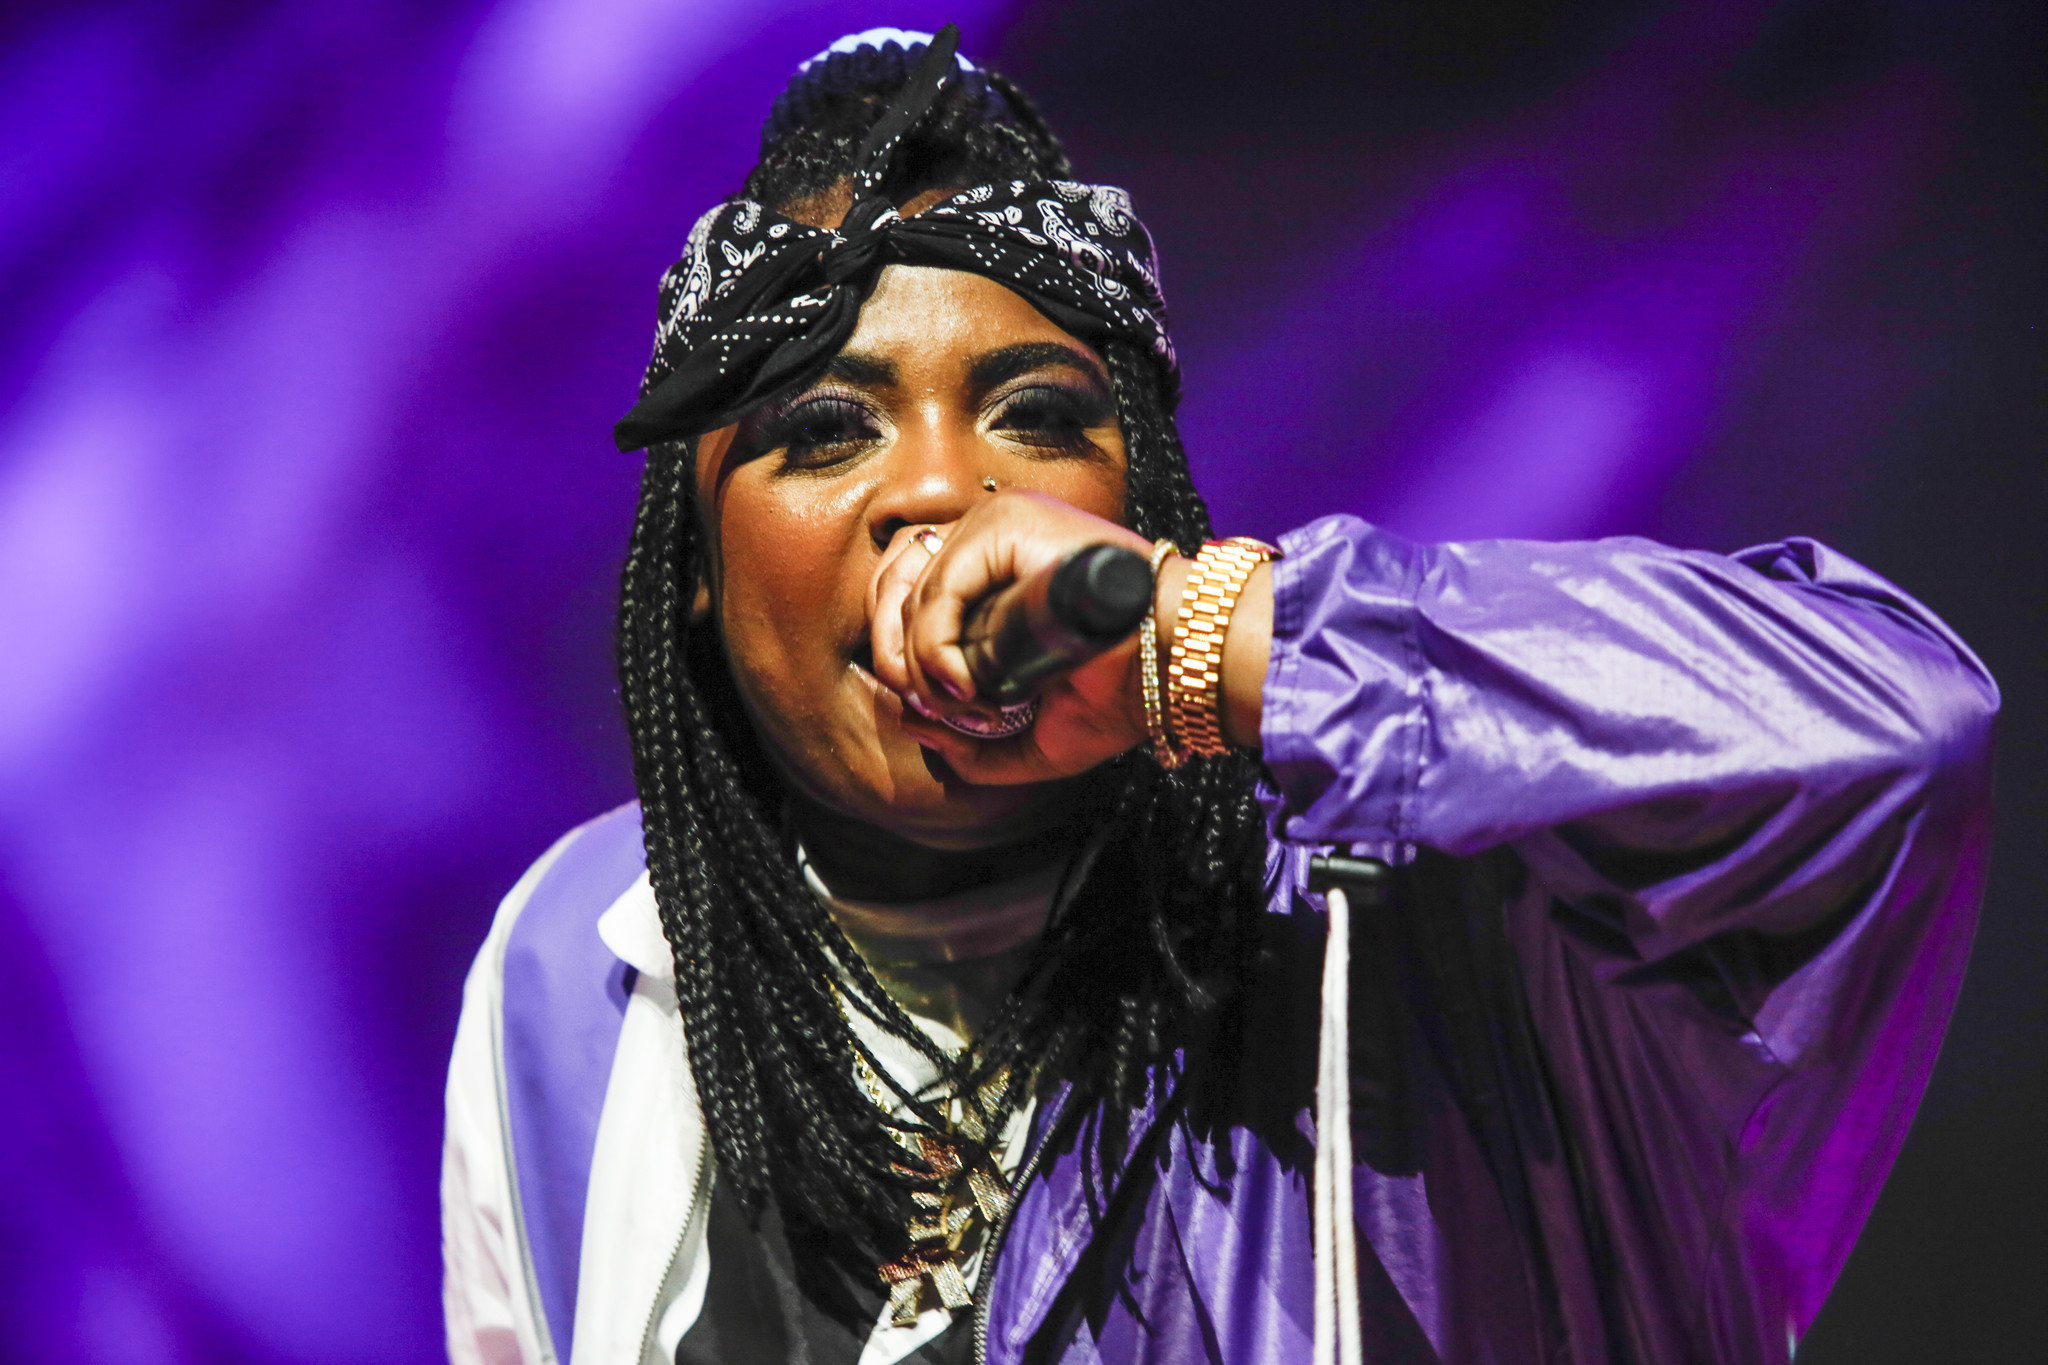 INDIO,CA — SUNDAY, APRIL 22, 2018-- Kamaiyah performs at the Gobi stage at Coachella Valley Music